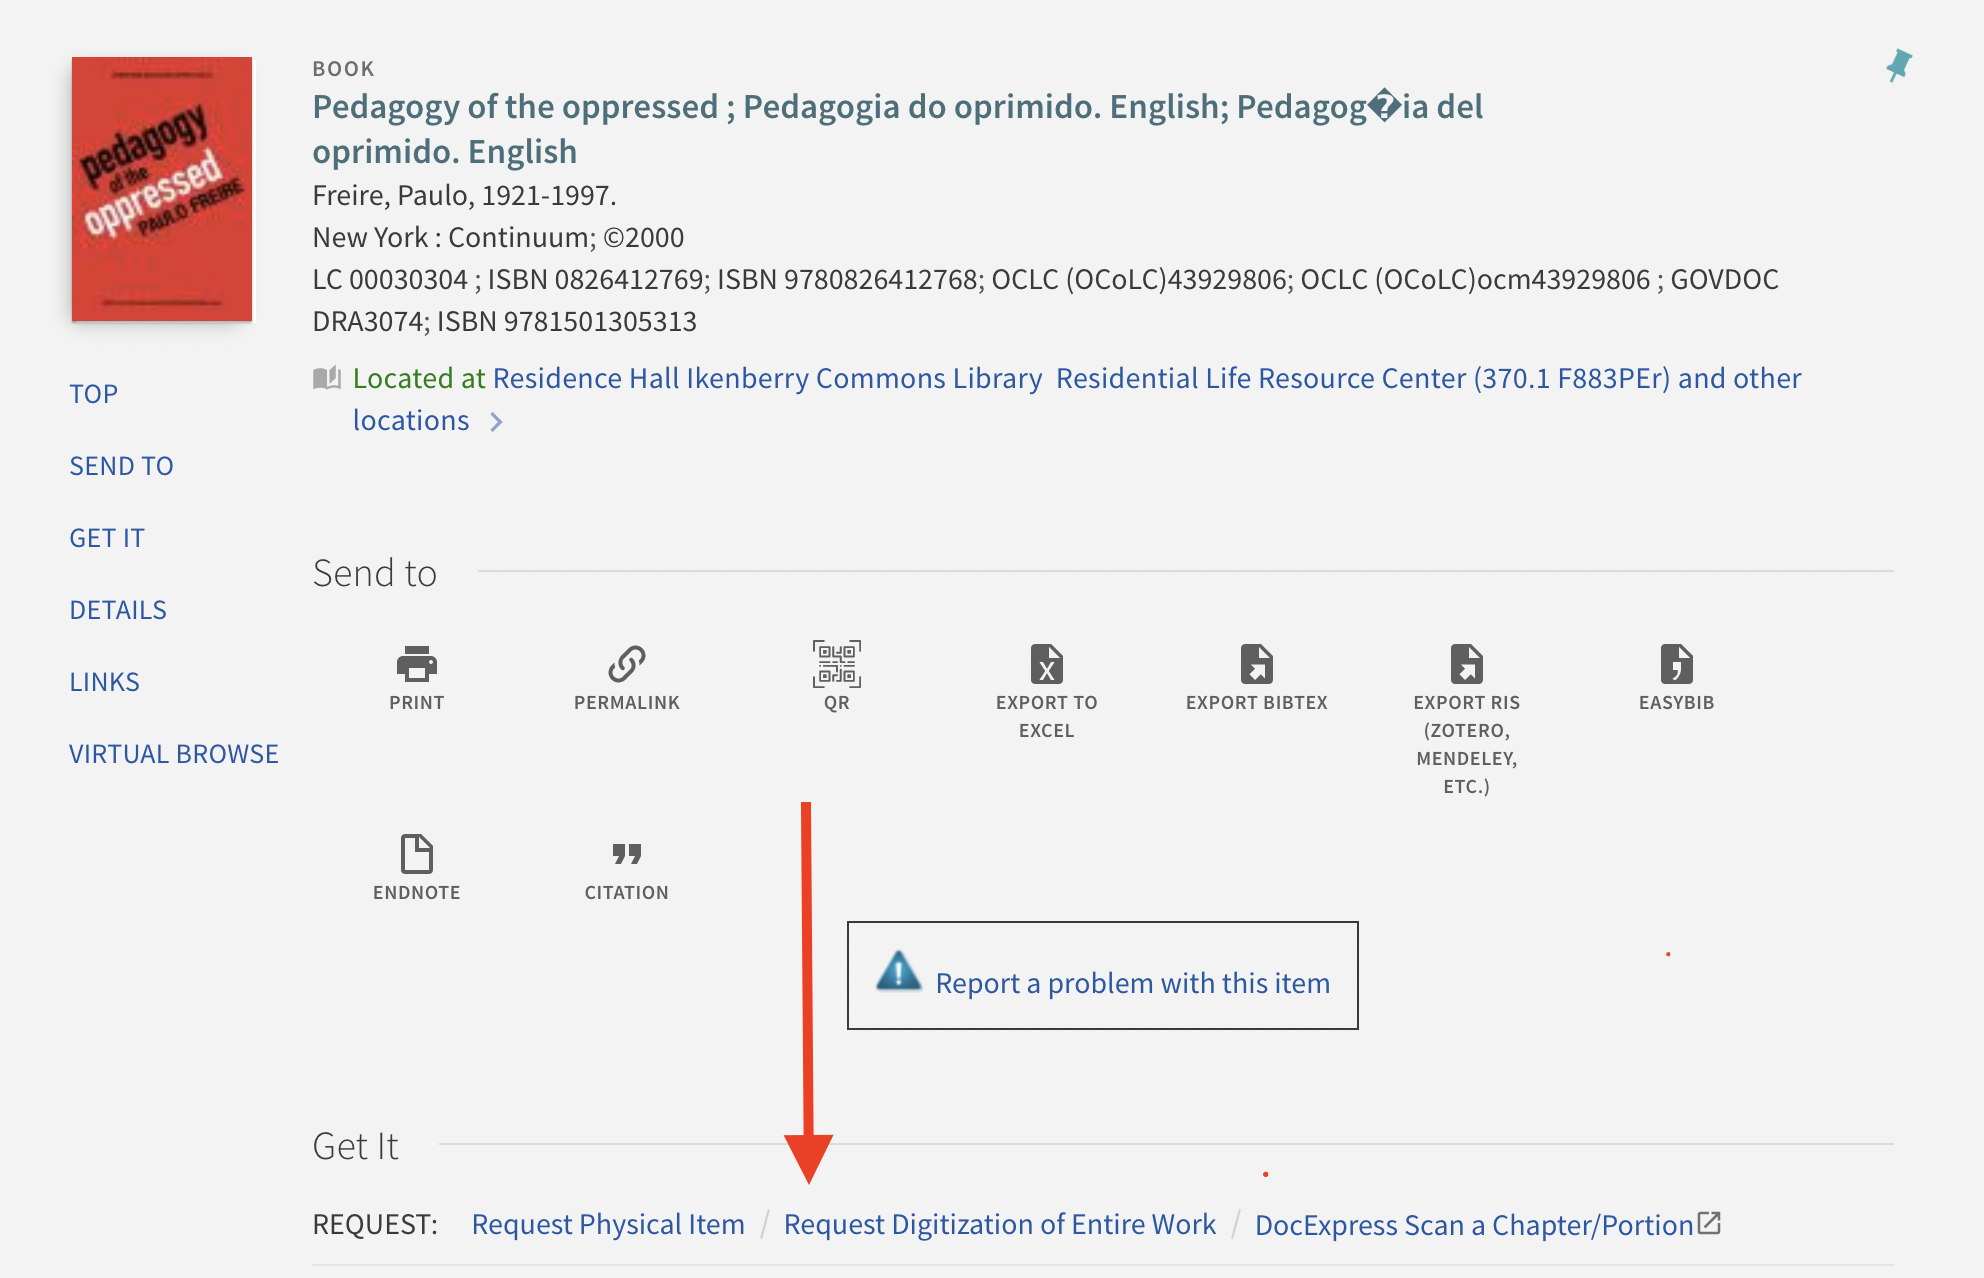 The library catalog page for the book Pedagogy of the Oppressed with an arrow pointing to the Request Digitization of Entire Work option under the Get It section of the catalog entry